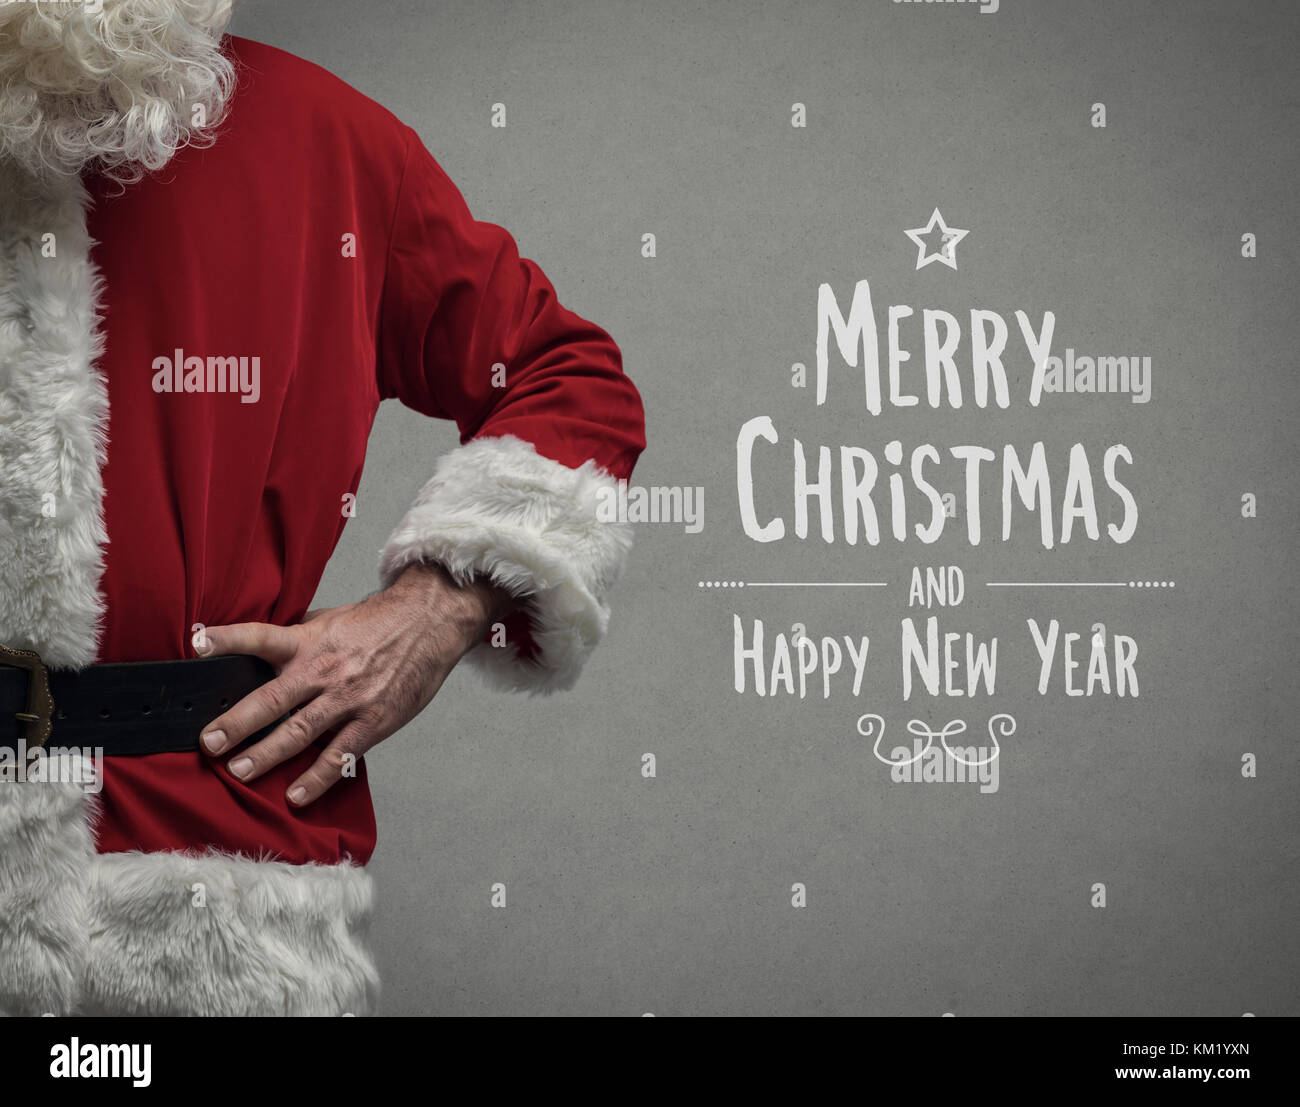 Confident Santa Claus posing with arms akimbo close up and Christmas wishes - Stock Image